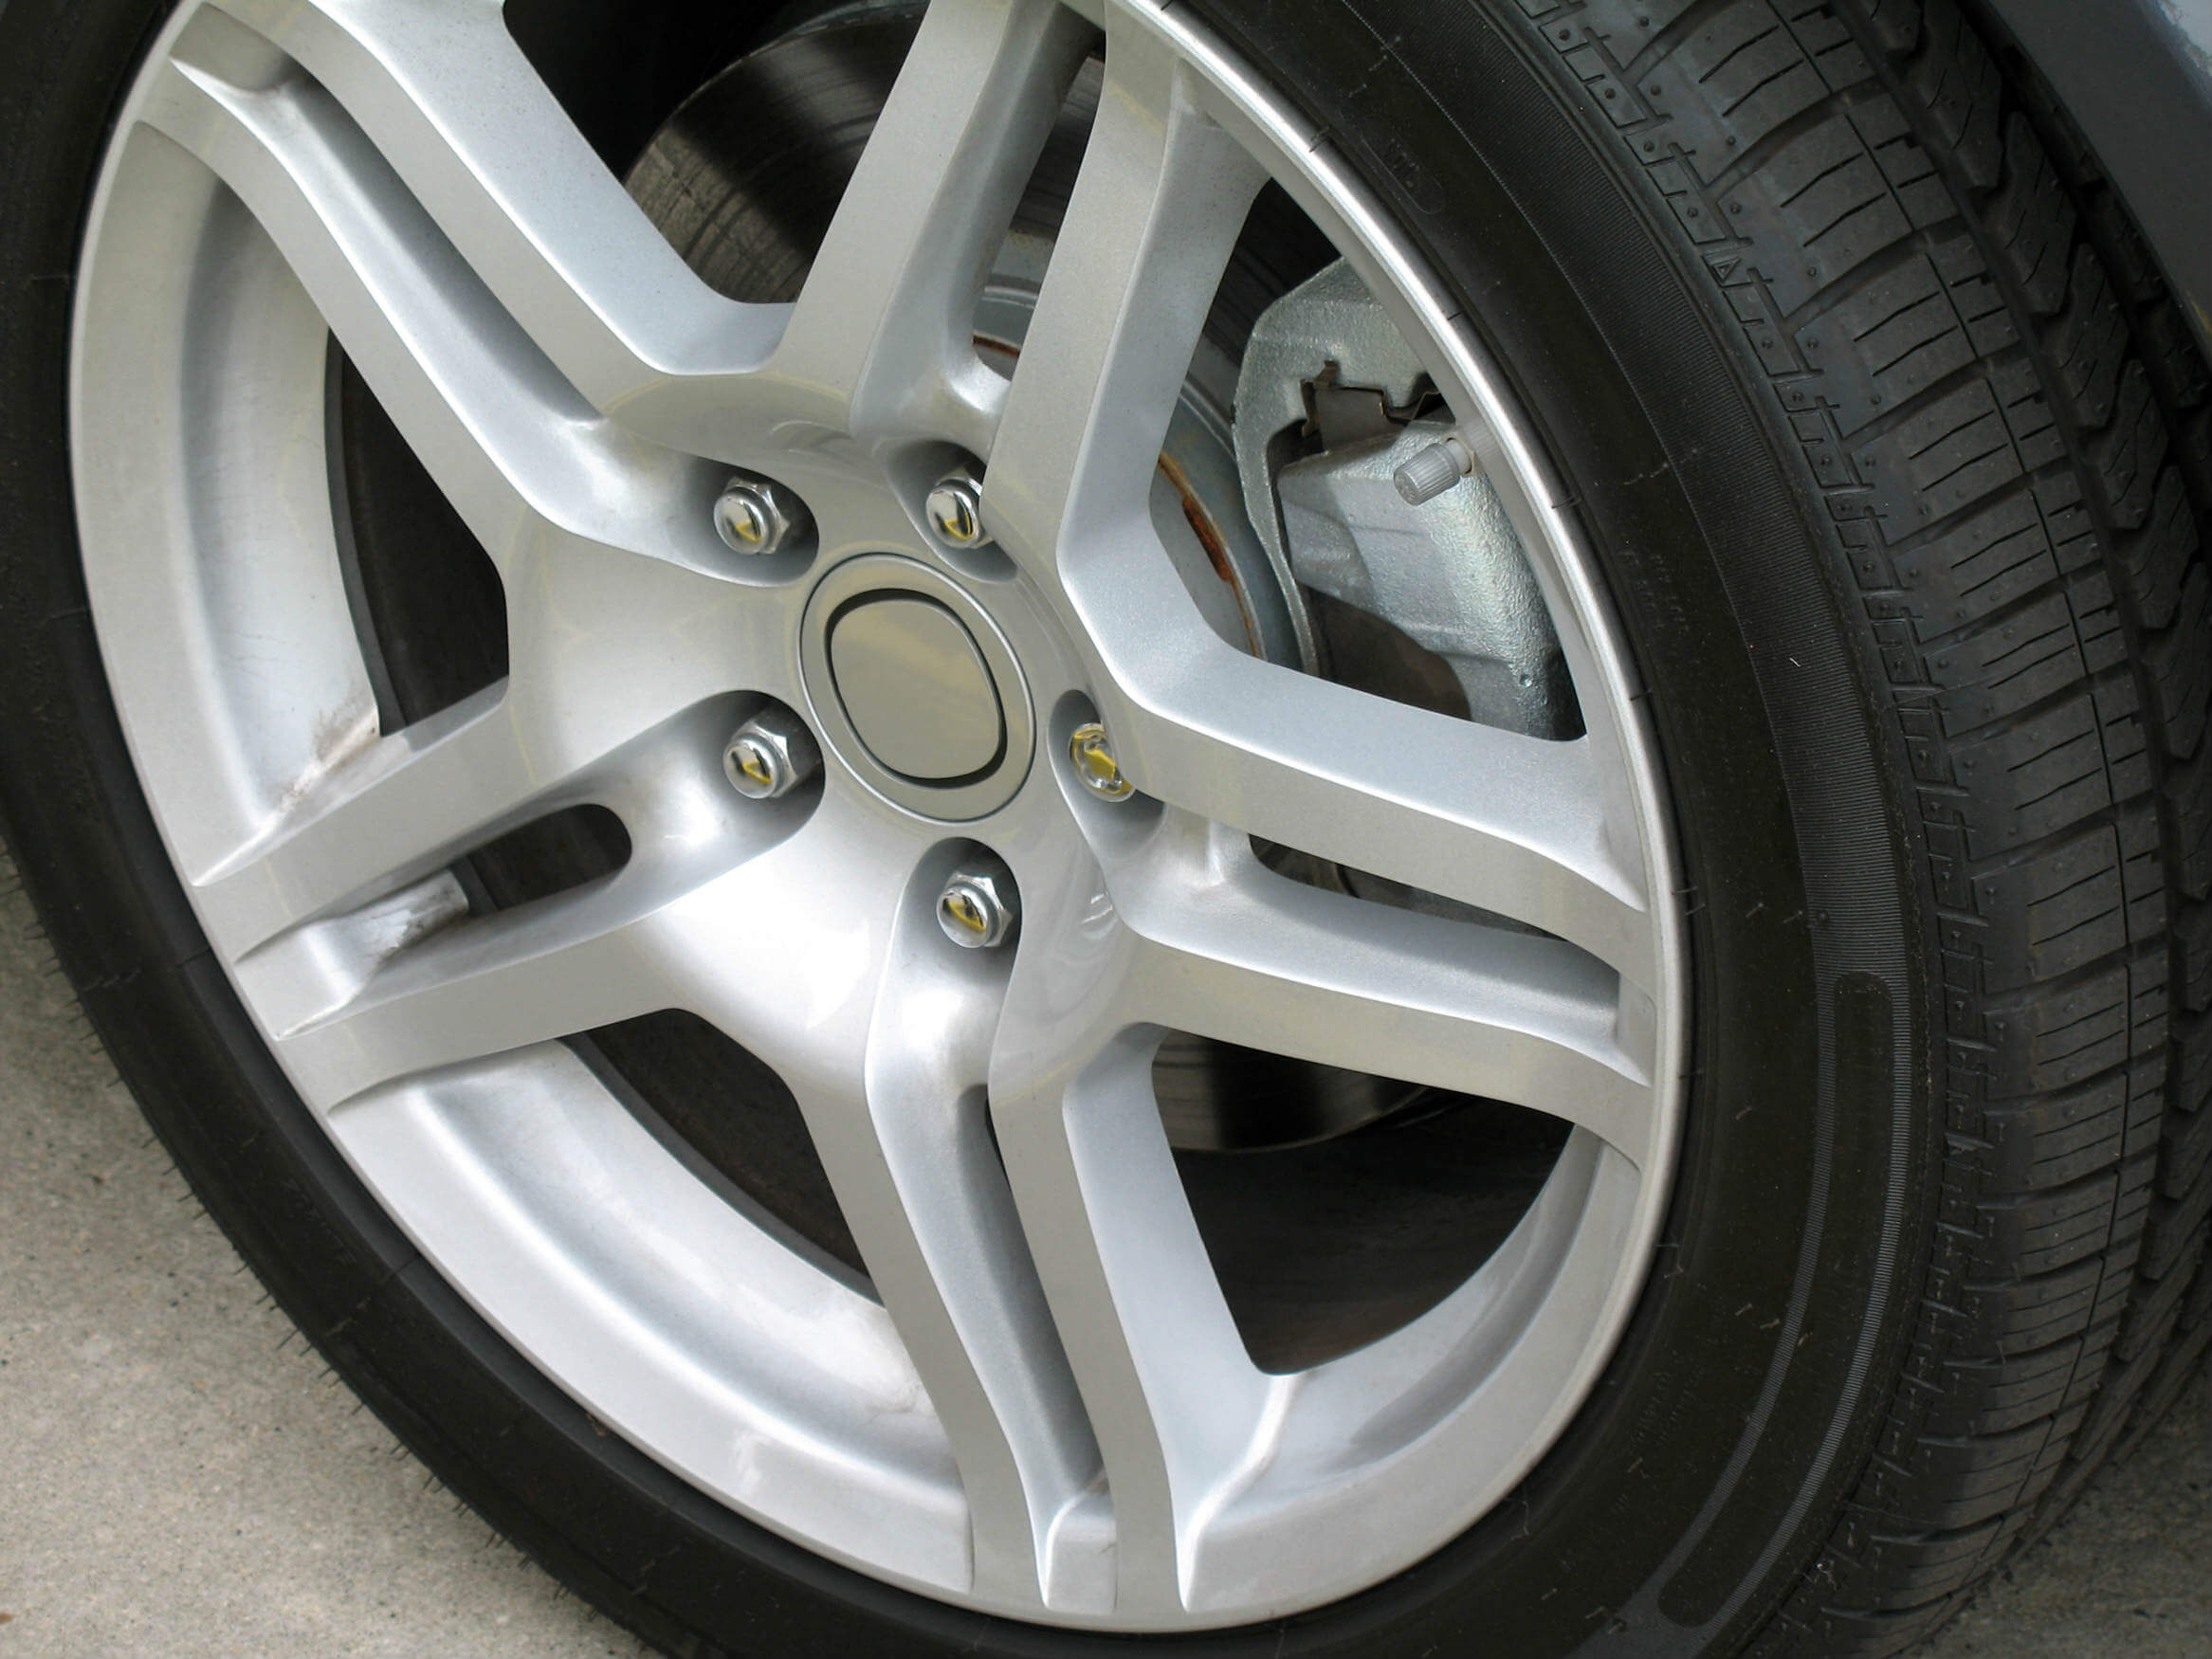 How to protect a car's alloy wheels from damage